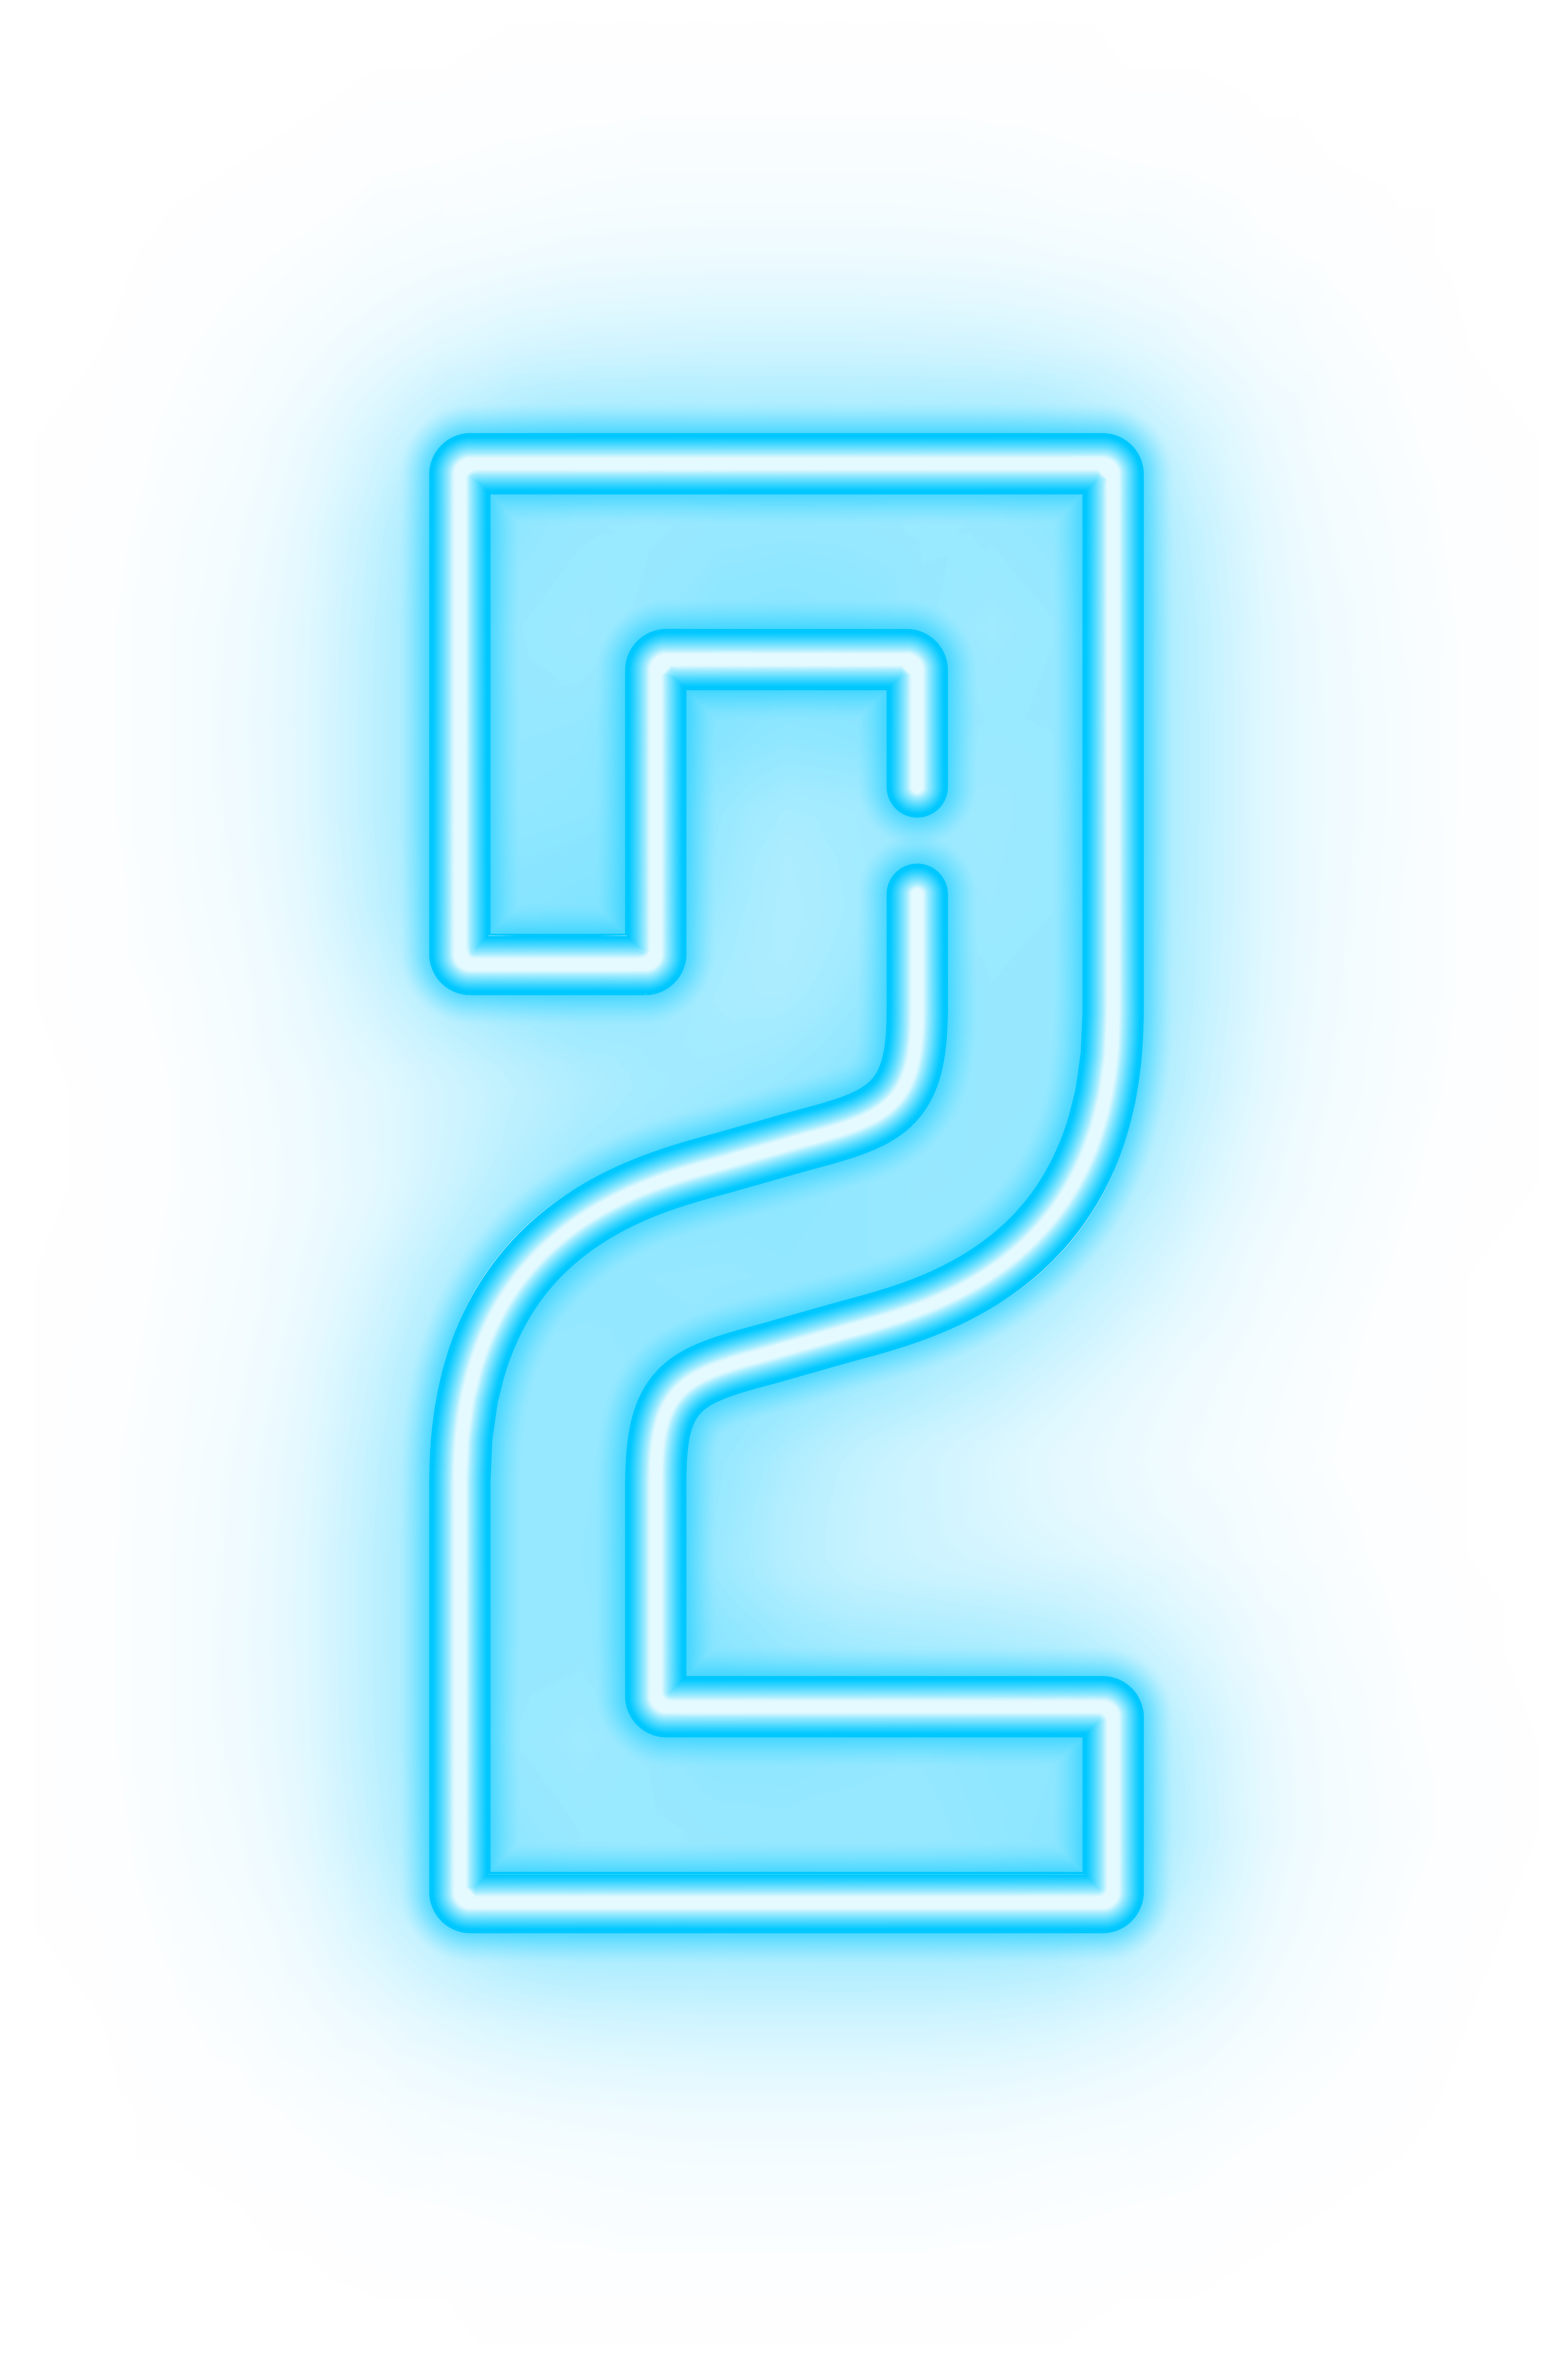 Neon Numbers Png - Neon Number Two Transparent Clip Art Image | Gallery Yopriceville ...